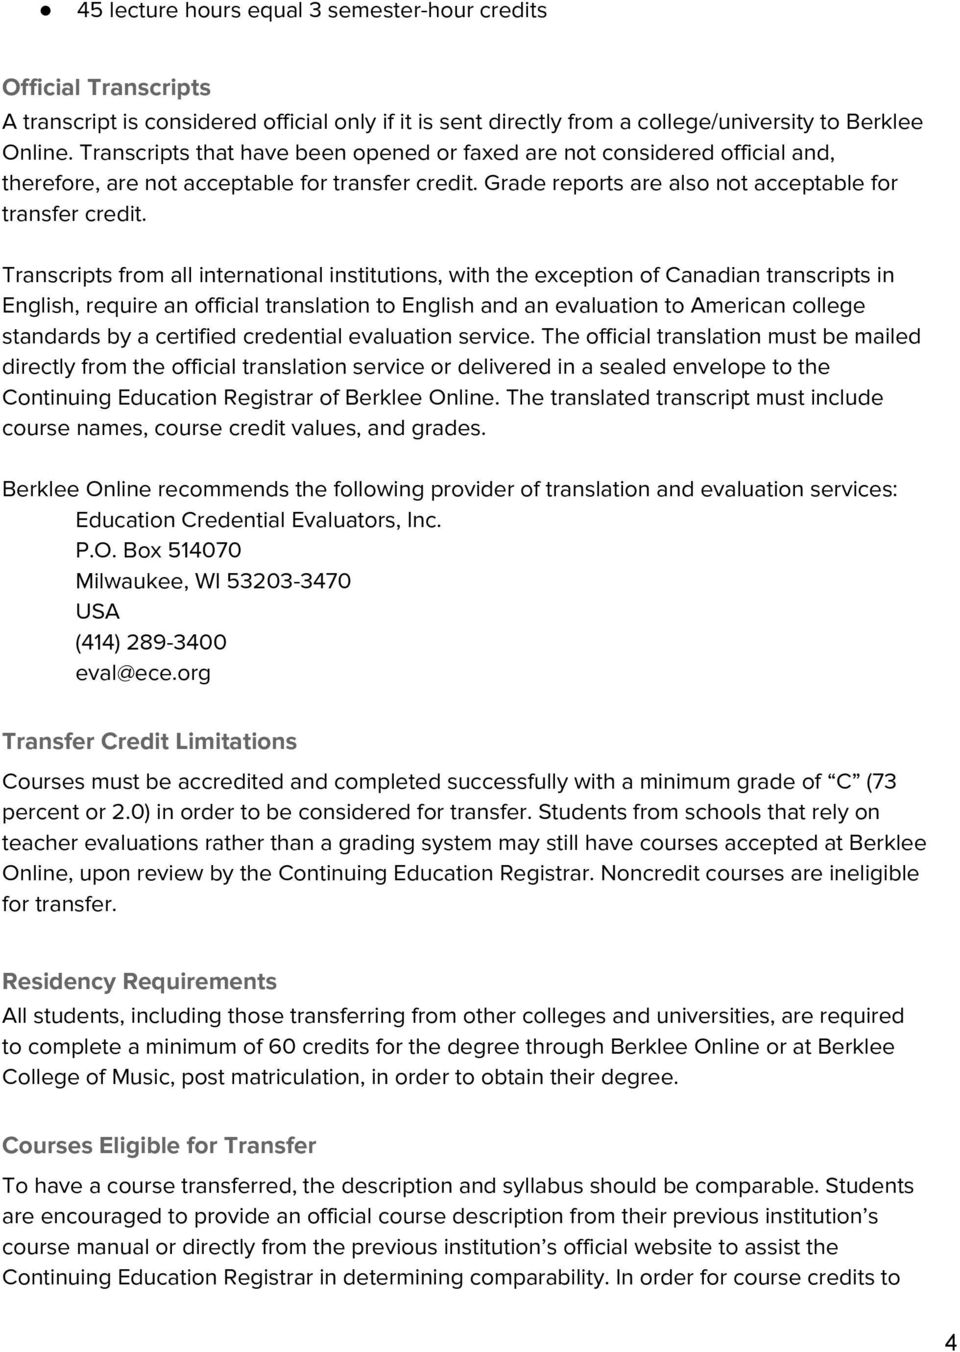 Transcripts from all international institutions, with the exception of Canadian transcripts in English, require an official translation to English and an evaluation to American college standards by a